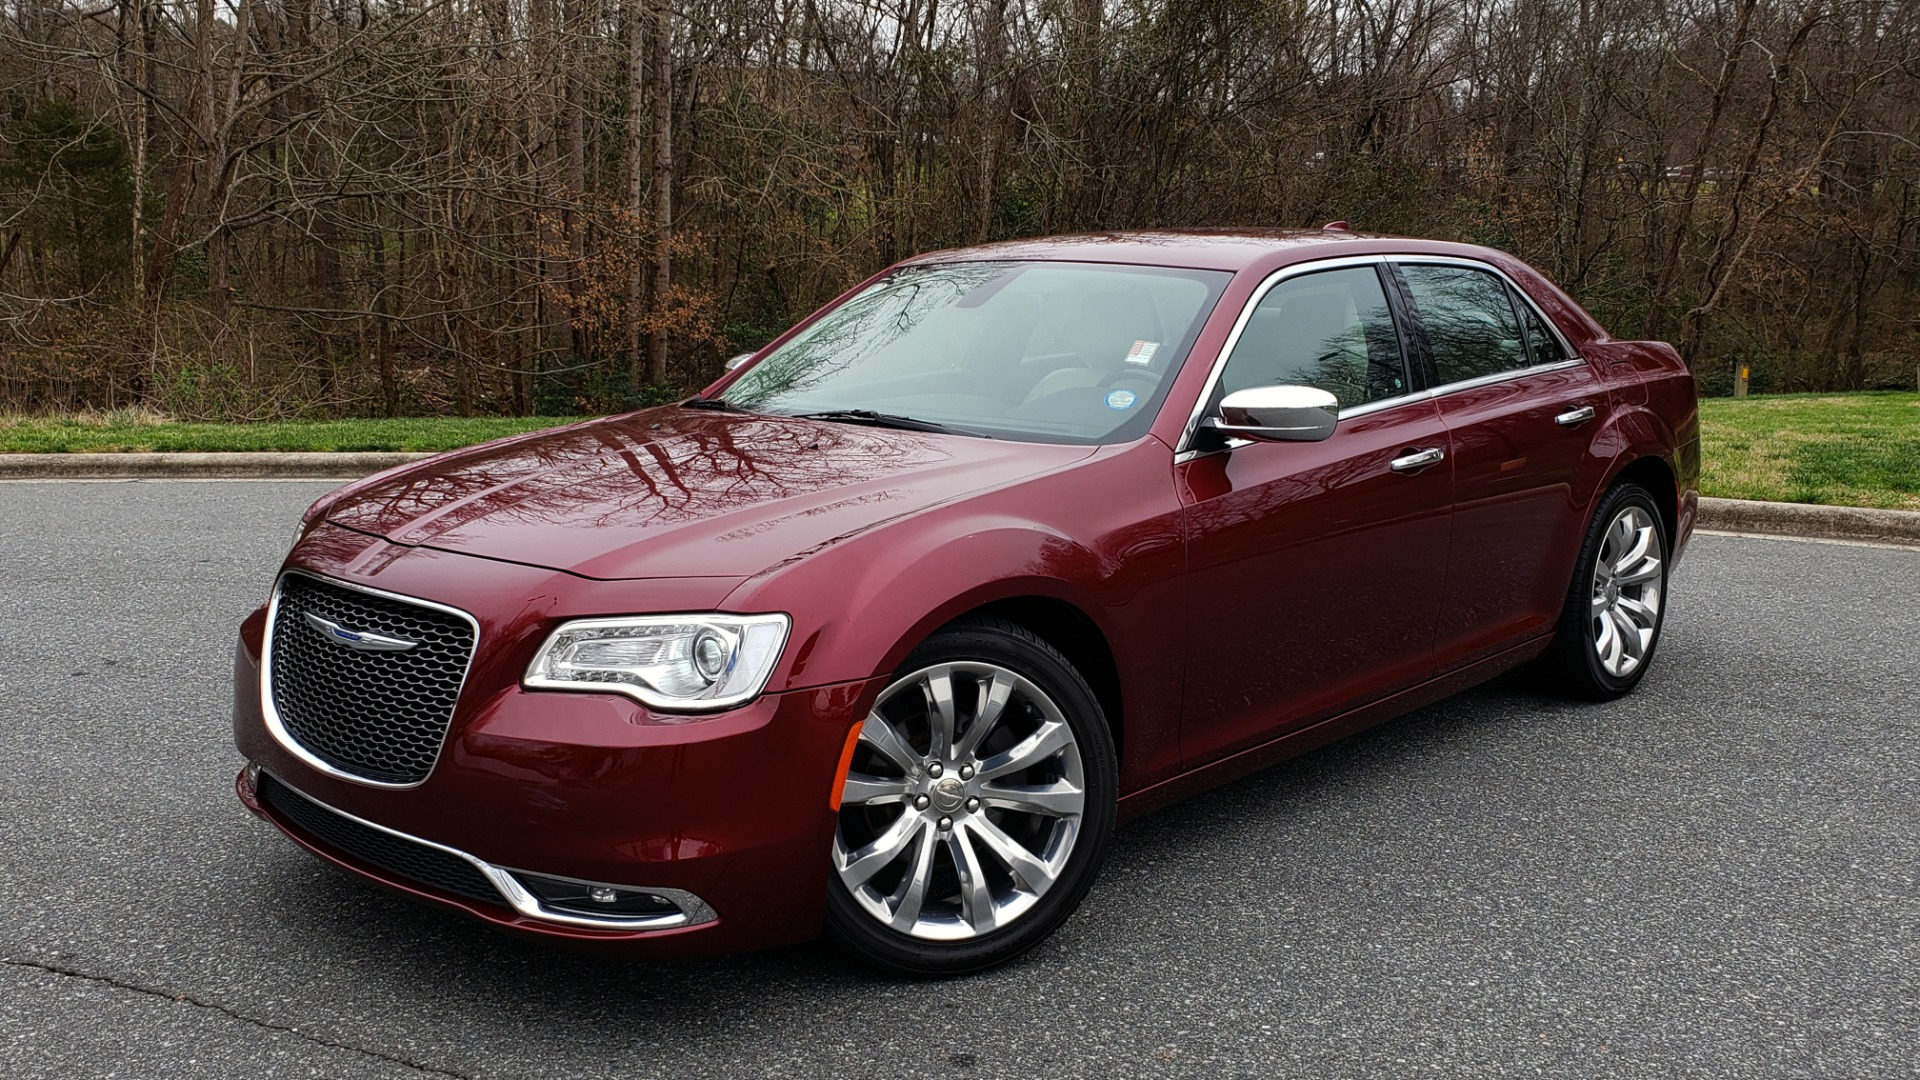 Used 2019 Chrysler 300 LIMITED / 3.6L V6 / 8-SPD AUTO / LEATHER / REARVIEW for sale Sold at Formula Imports in Charlotte NC 28227 1